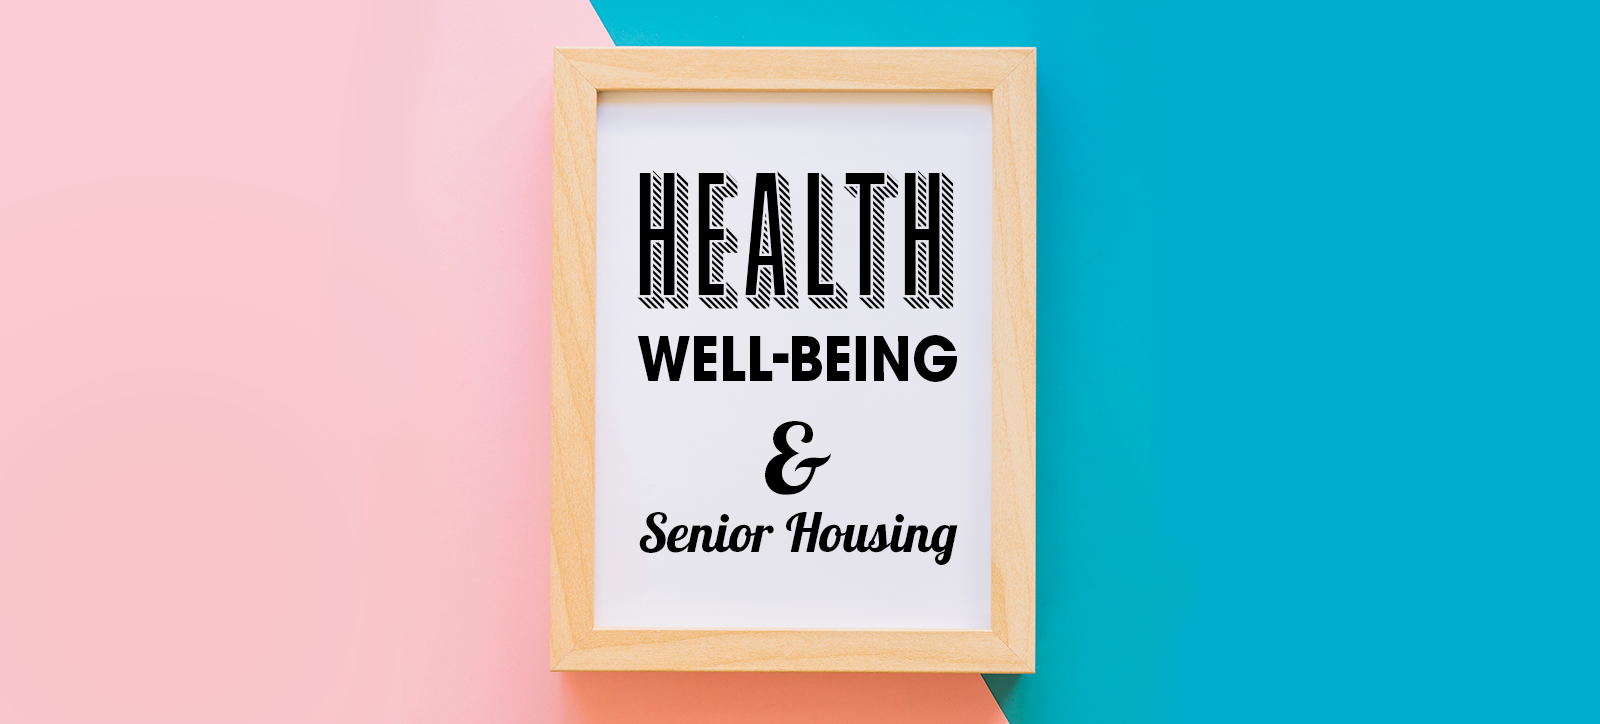 https://cdn2.hubspot.net/hubfs/1564584/SLIF-WELL-Building-Standard-and-Senior-Housing-1.png